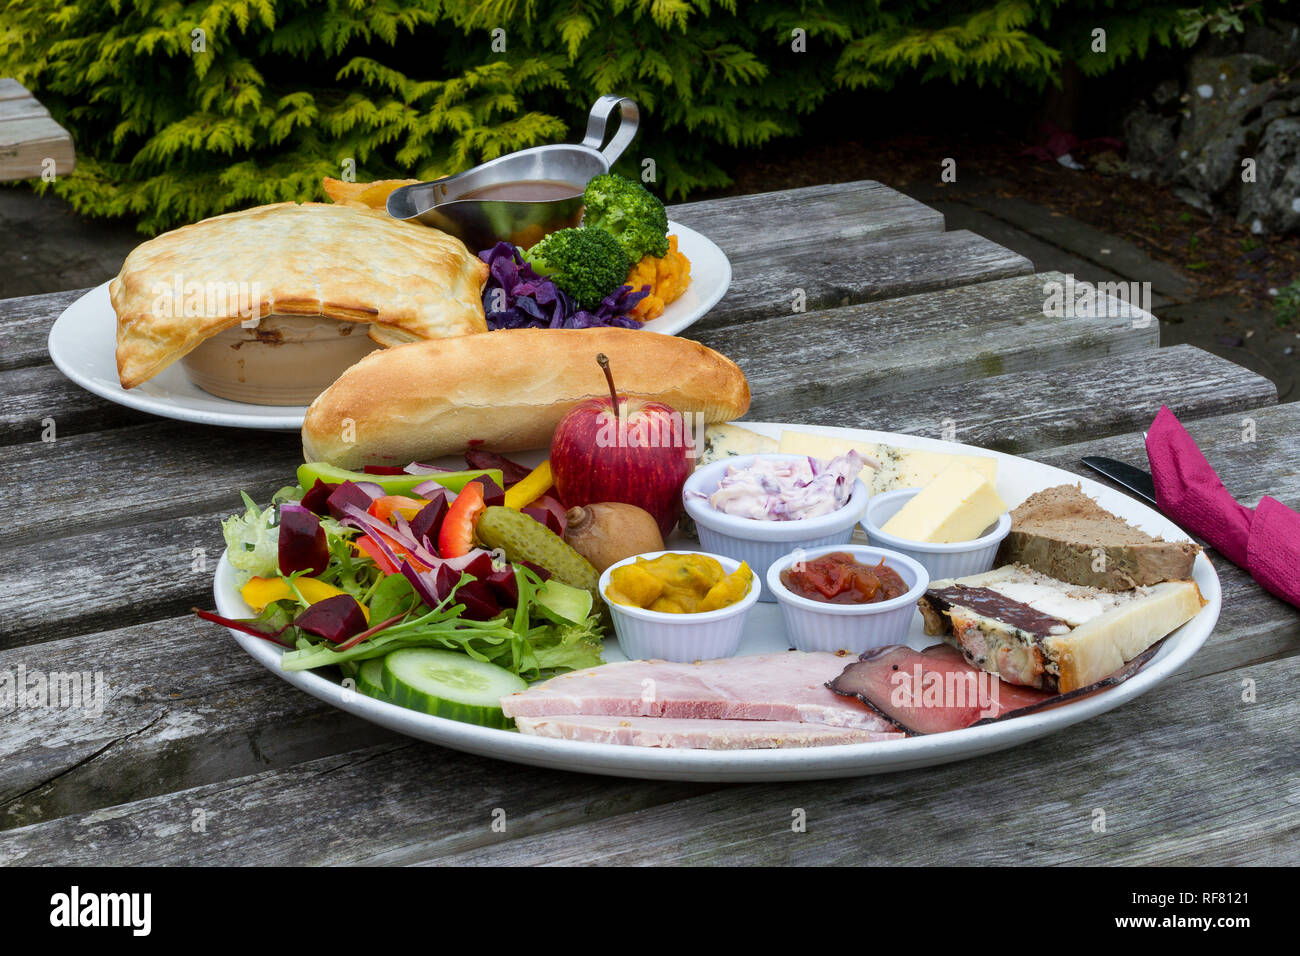 Ploughman's Lunch with Pie and Chips - Stock Image